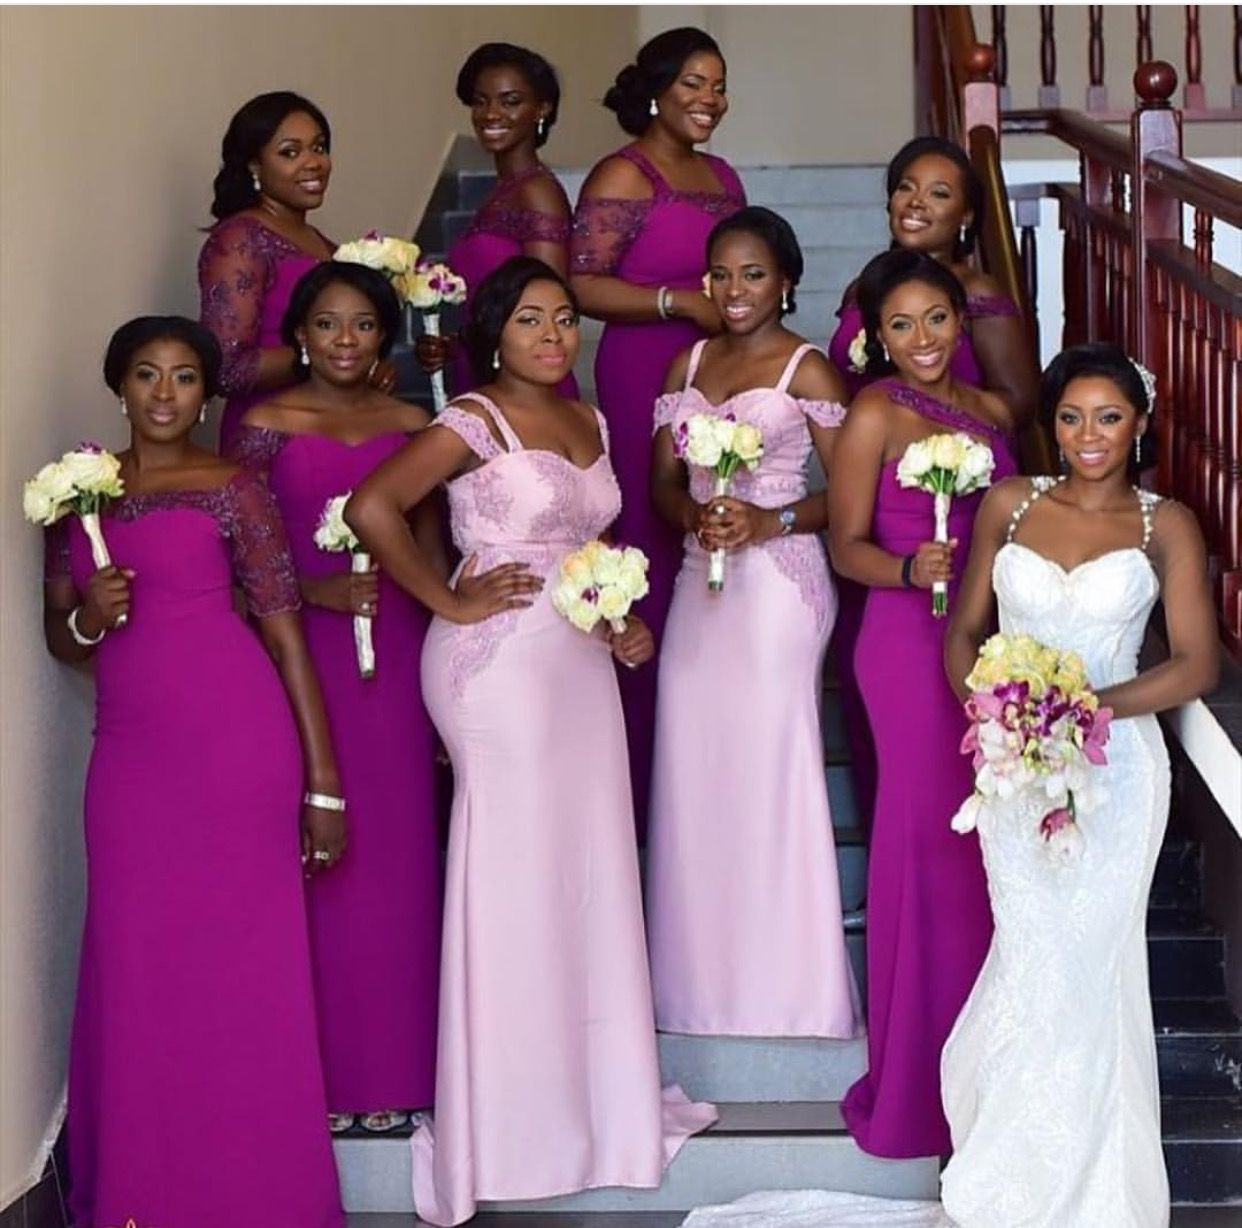 Pin de Vivace Princess en Bridesmaid | Pinterest